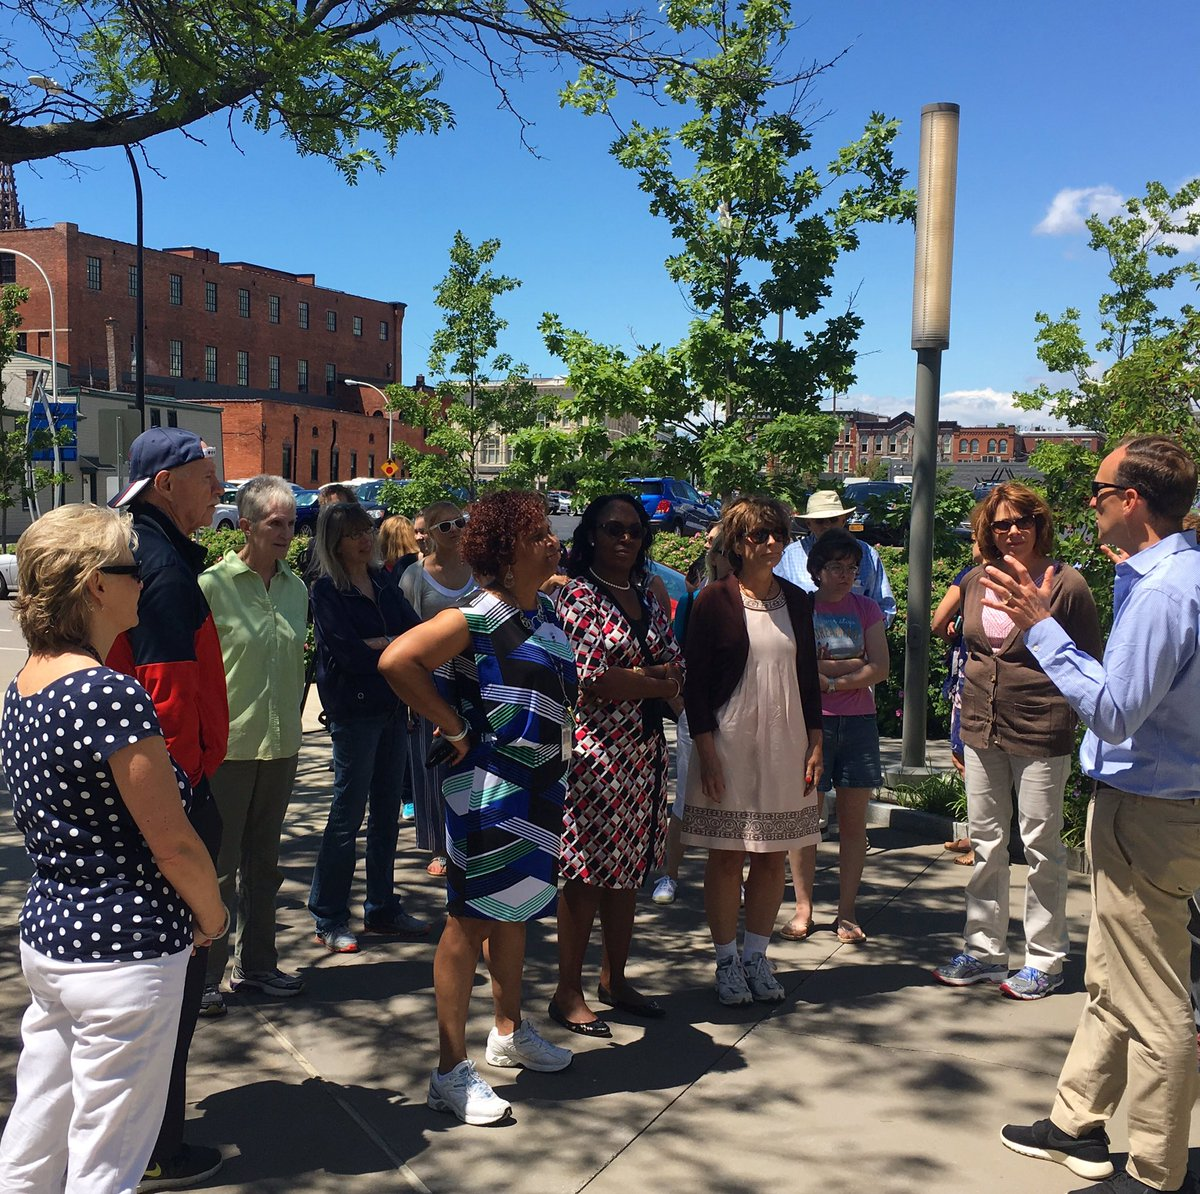 Our CEO @menstice led today's #walkonwednesday for Campus employees and members of the community! #healthycommunities